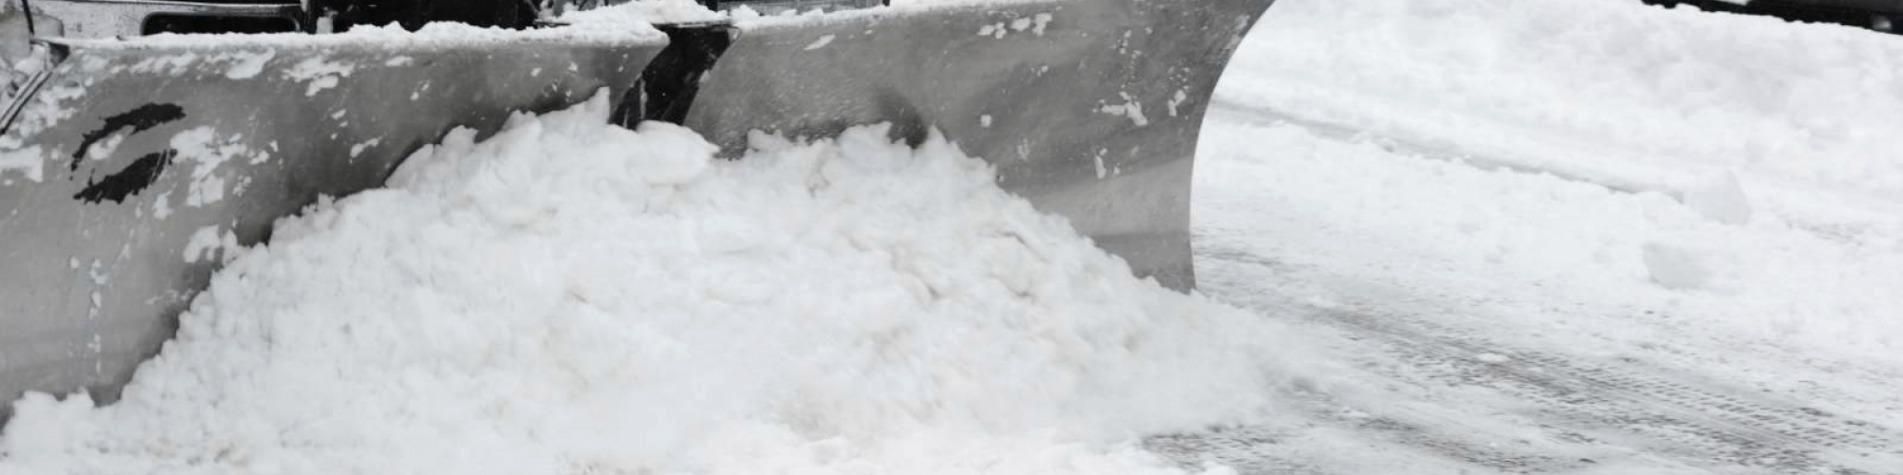 Snow Removal Contract Example Luxury Snow Removal Contracts 101